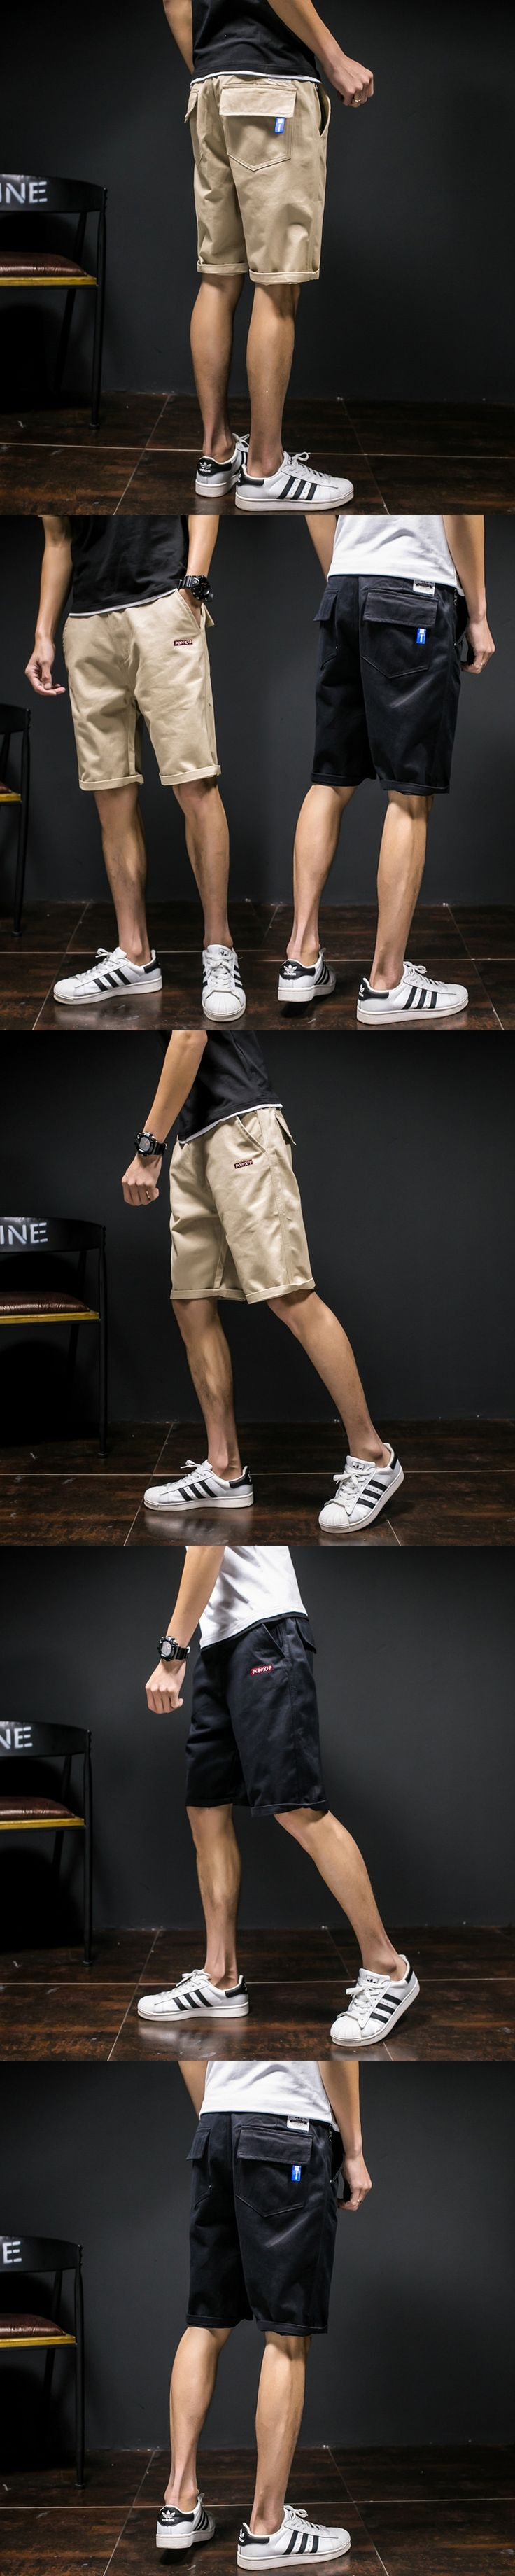 2017 Men Summer Knee Long Overalls Casual Mid Waist Fashion Cotton Slim Shorts Large Size Workout Trousers With Pocket 4xl 5XL